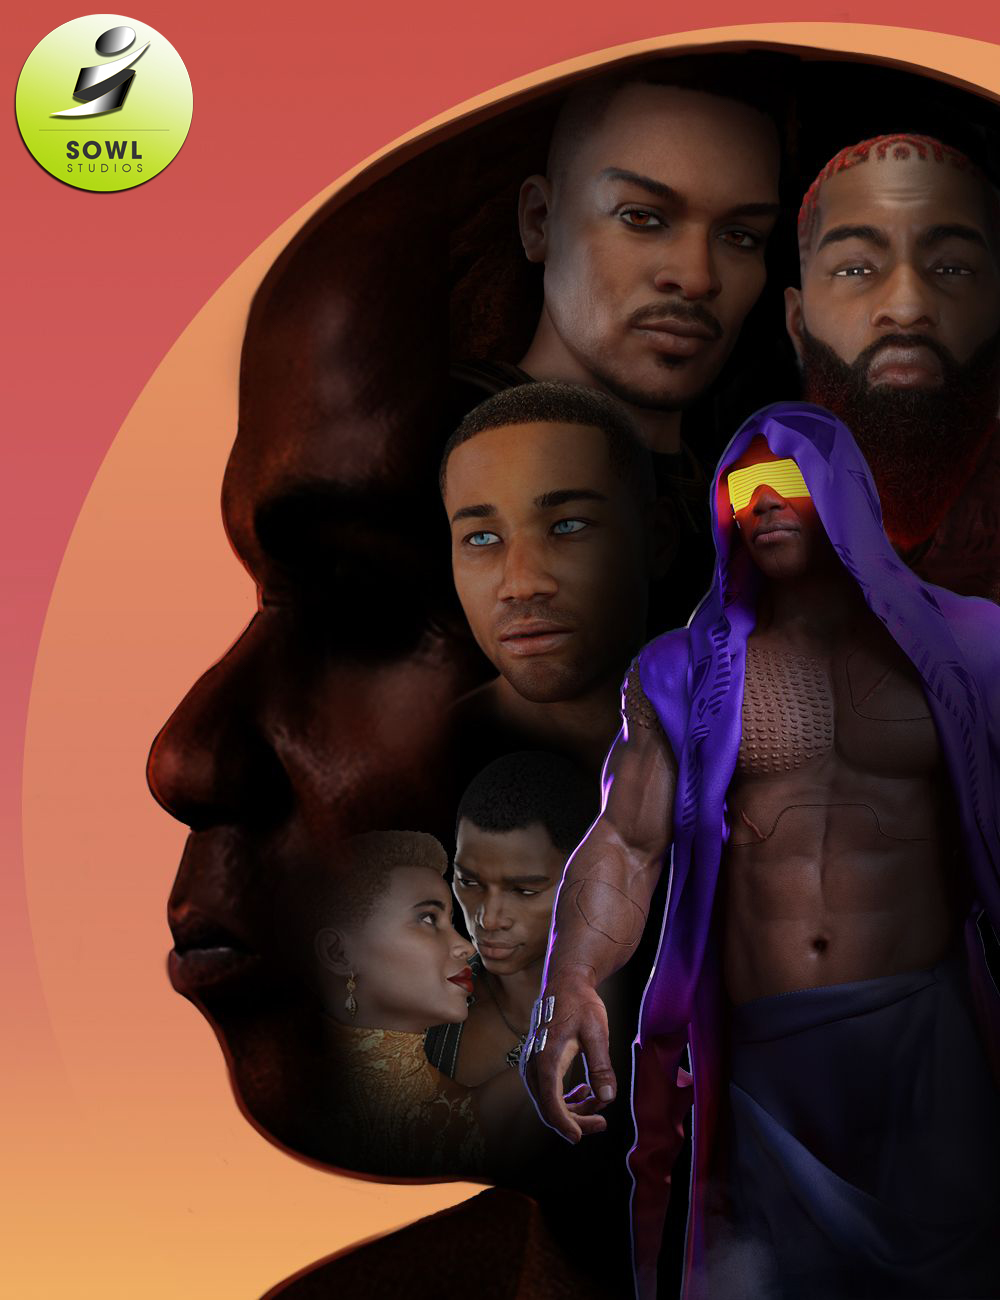 Celebrate Black Men Sowl Studios Picks by: , 3D Models by Daz 3D